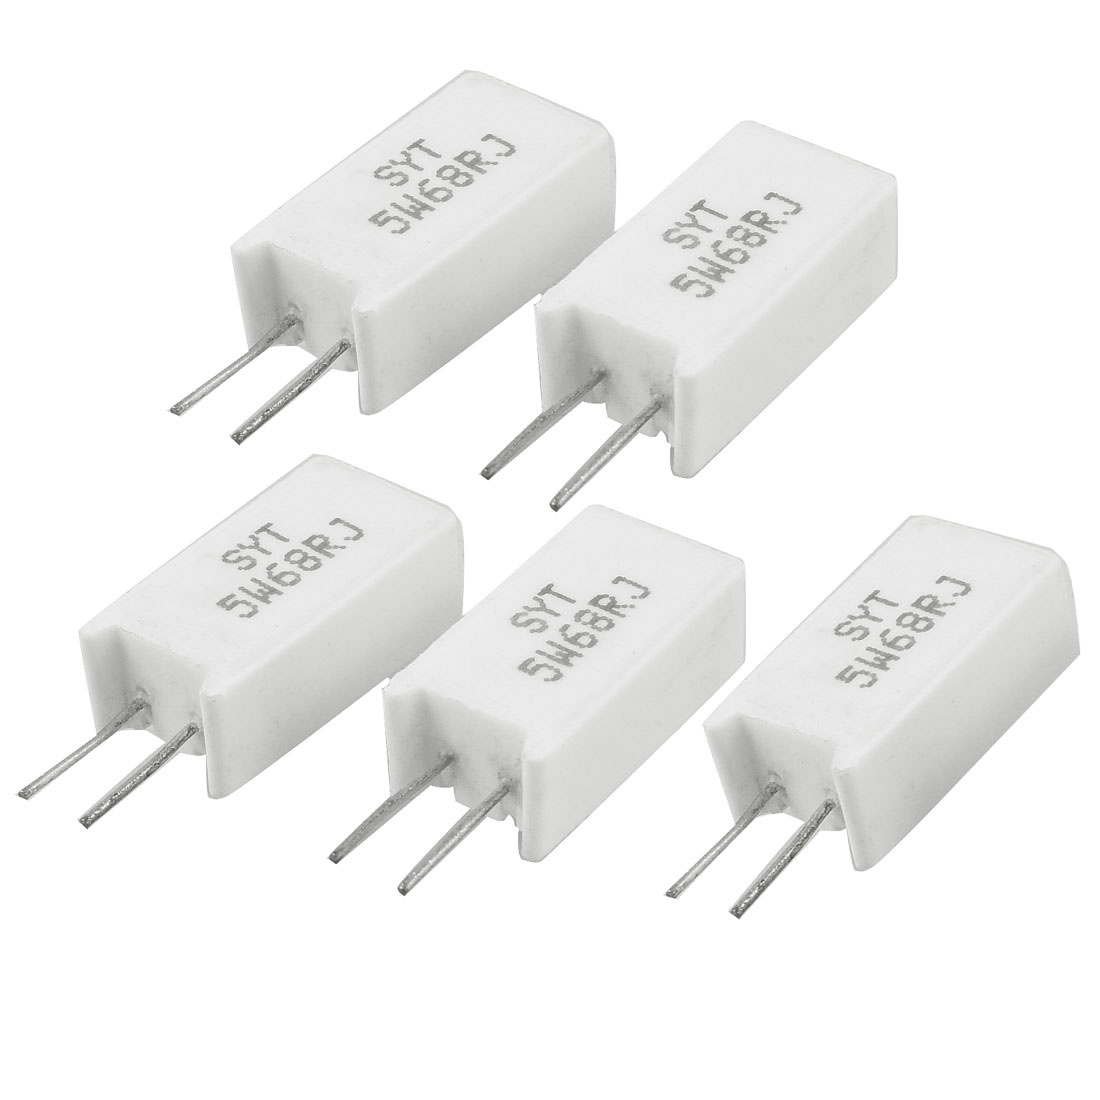 5 x 5W 68 Ohm Radial Lead Ceramic Cement Power Resistors